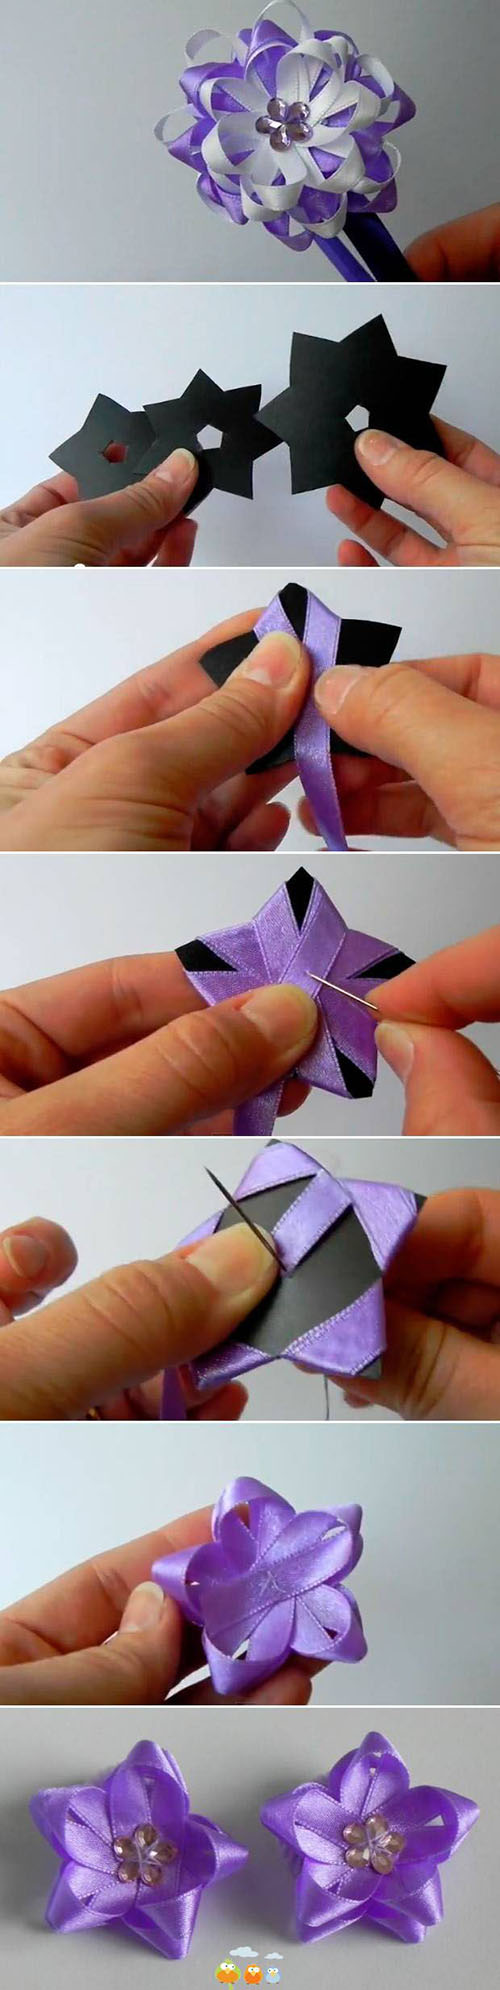 13  Ribbon flower7